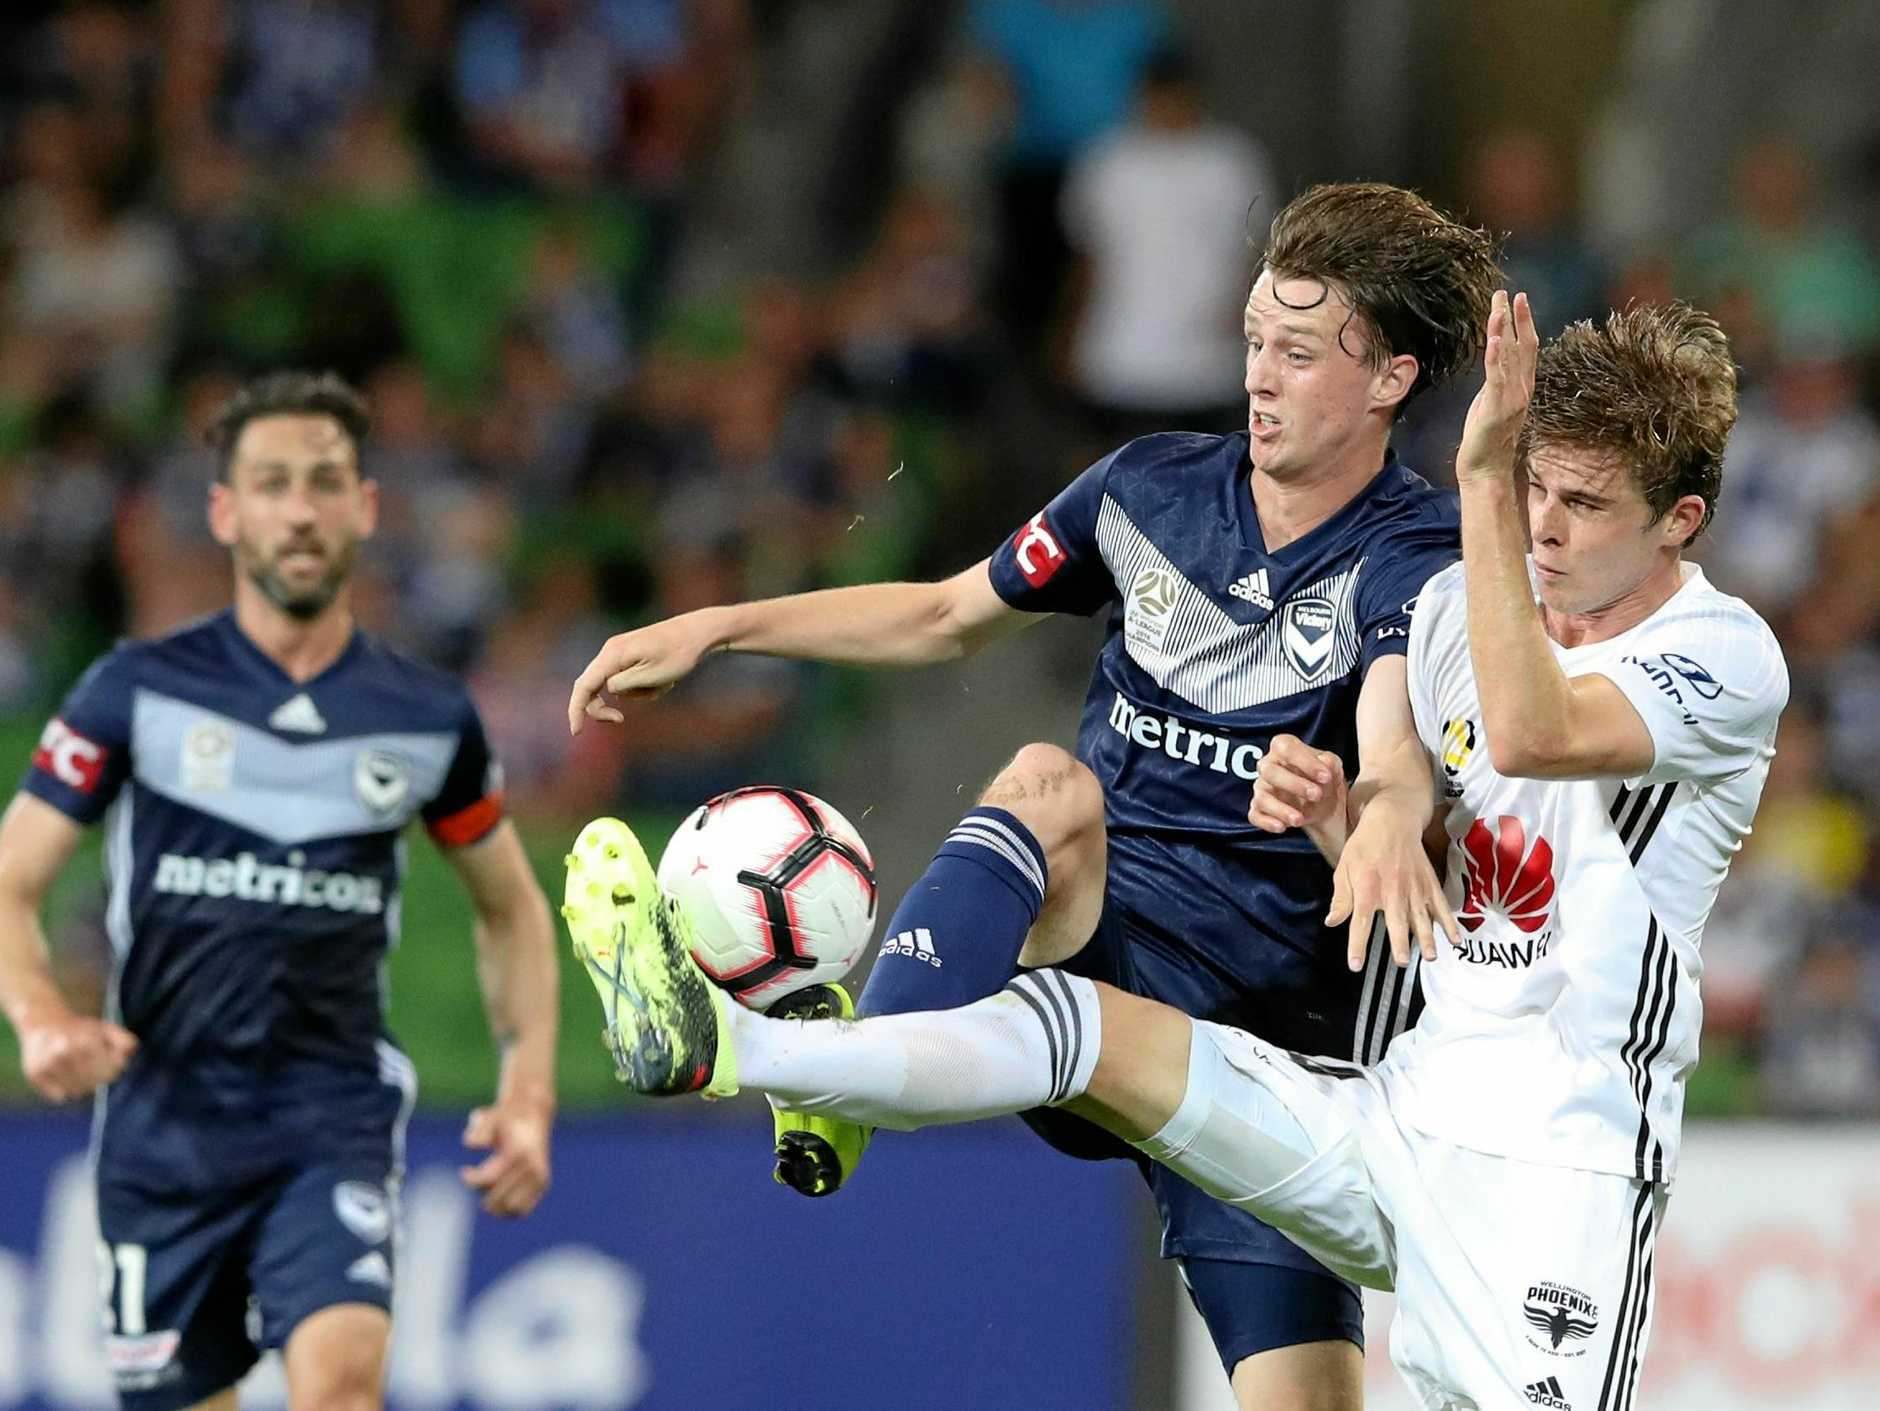 Melbourne Victory's Josh Hope and Wellington's Alex Rufer contest possession on Friday night at AAMI. Picture: David Crosling/AAP